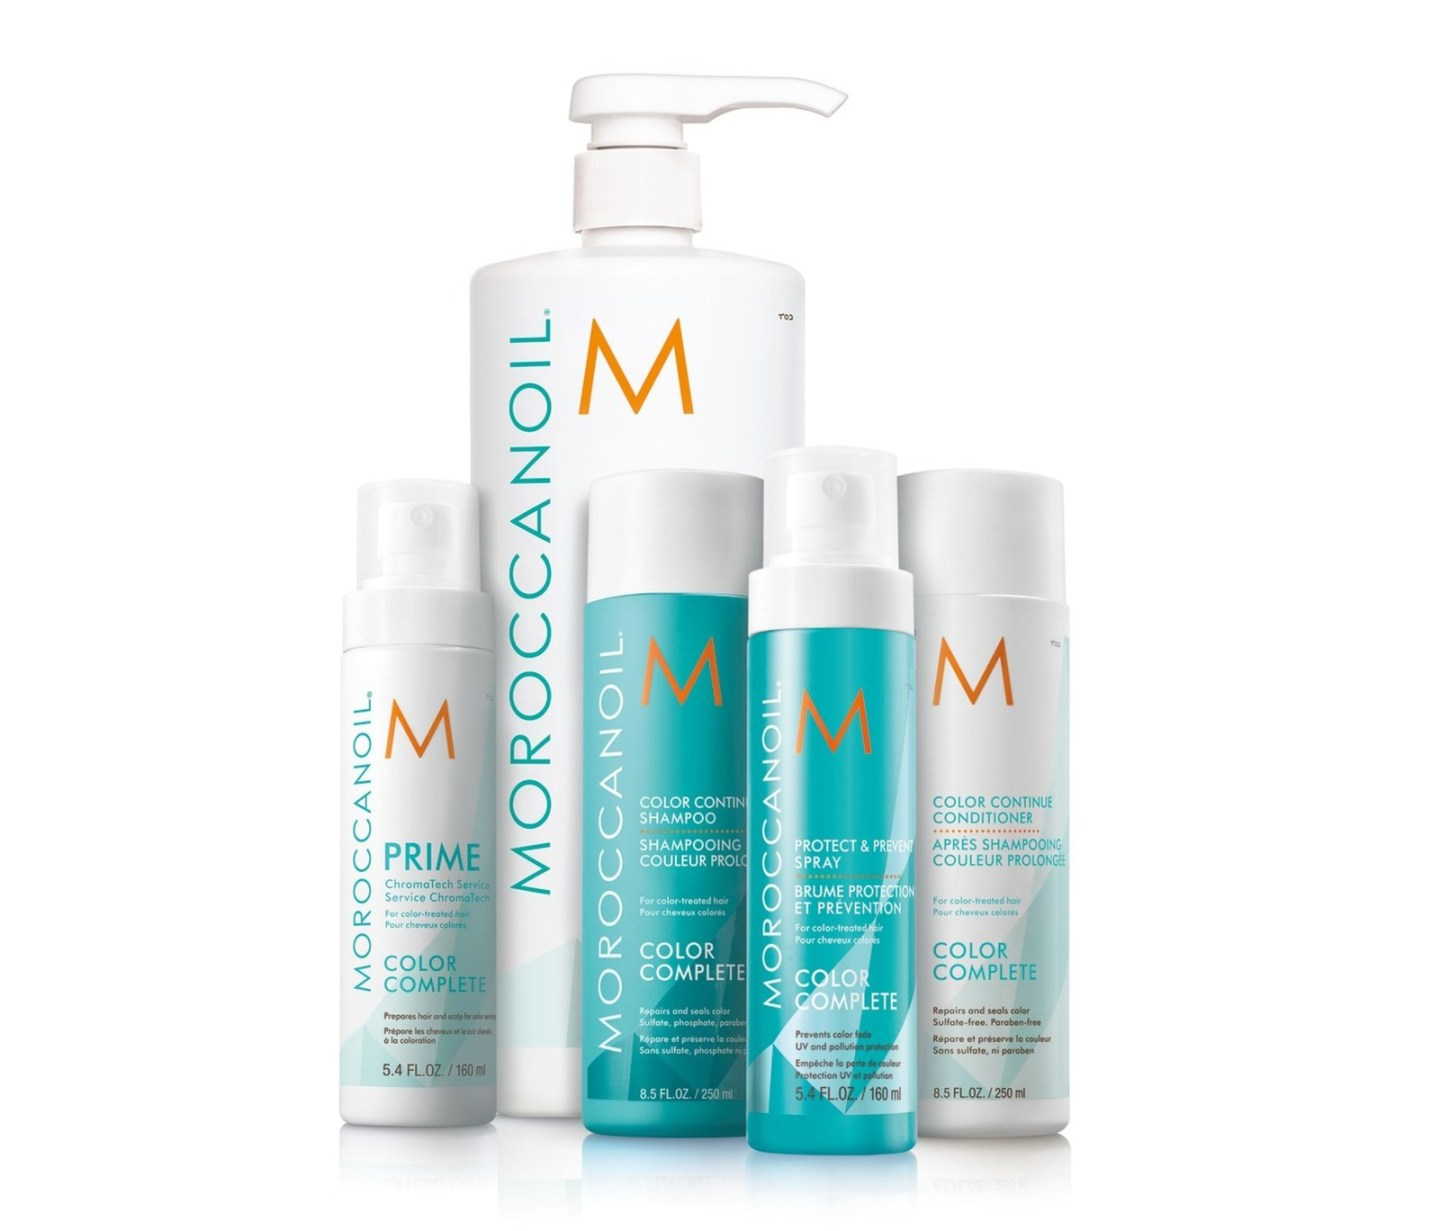 Moroccanoil Introduces New Color Complete Collection